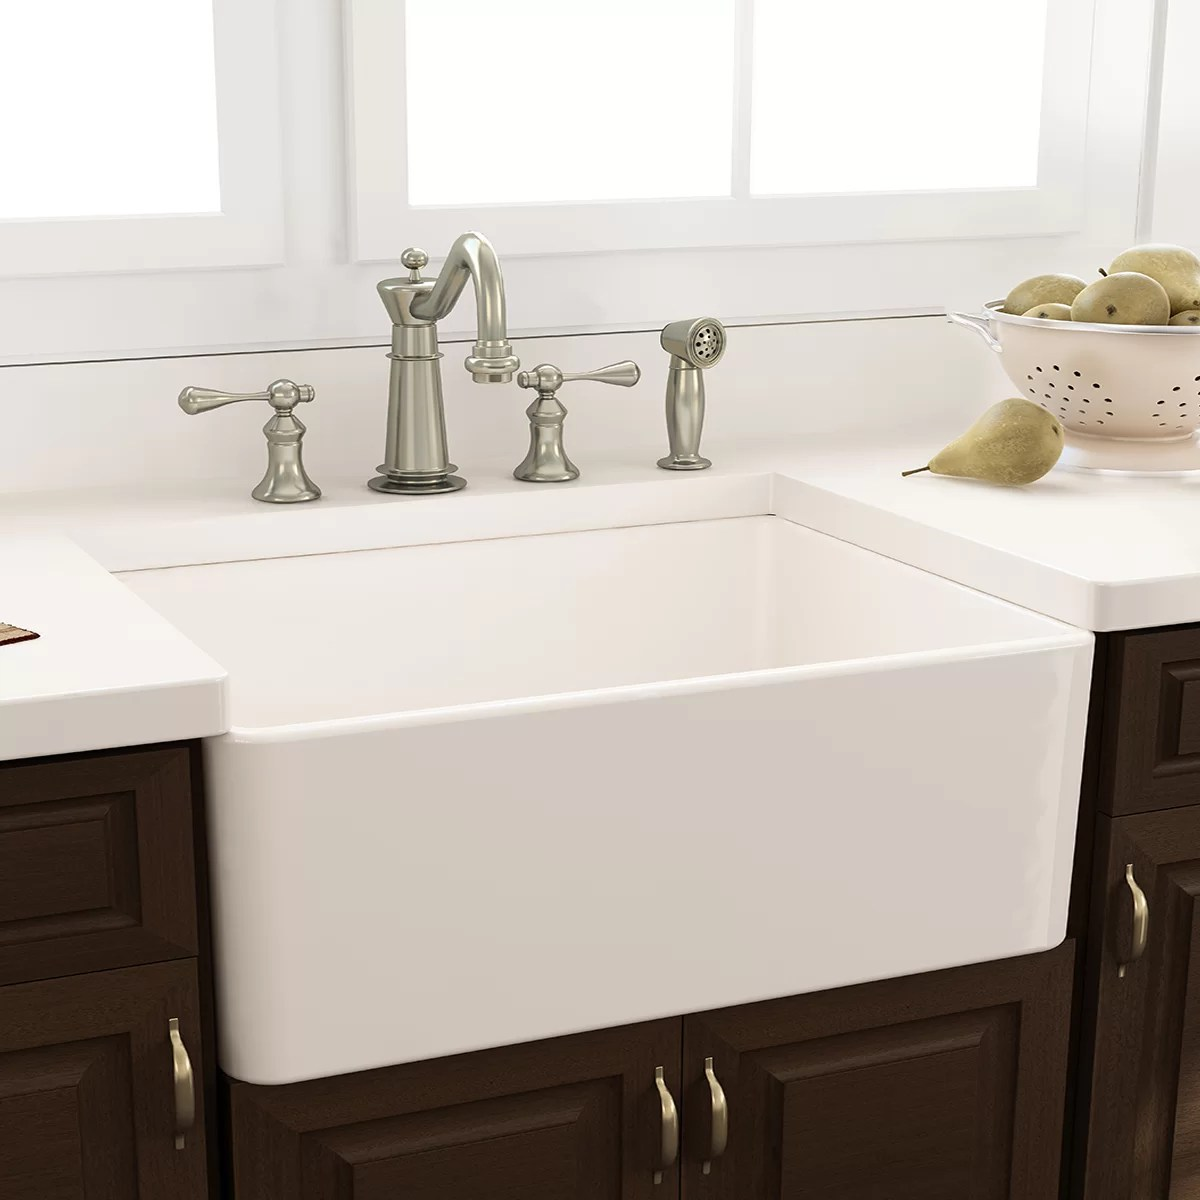 Nantucket Sinks Cape 3025quot X 18quot Kitchen Sink With Grid